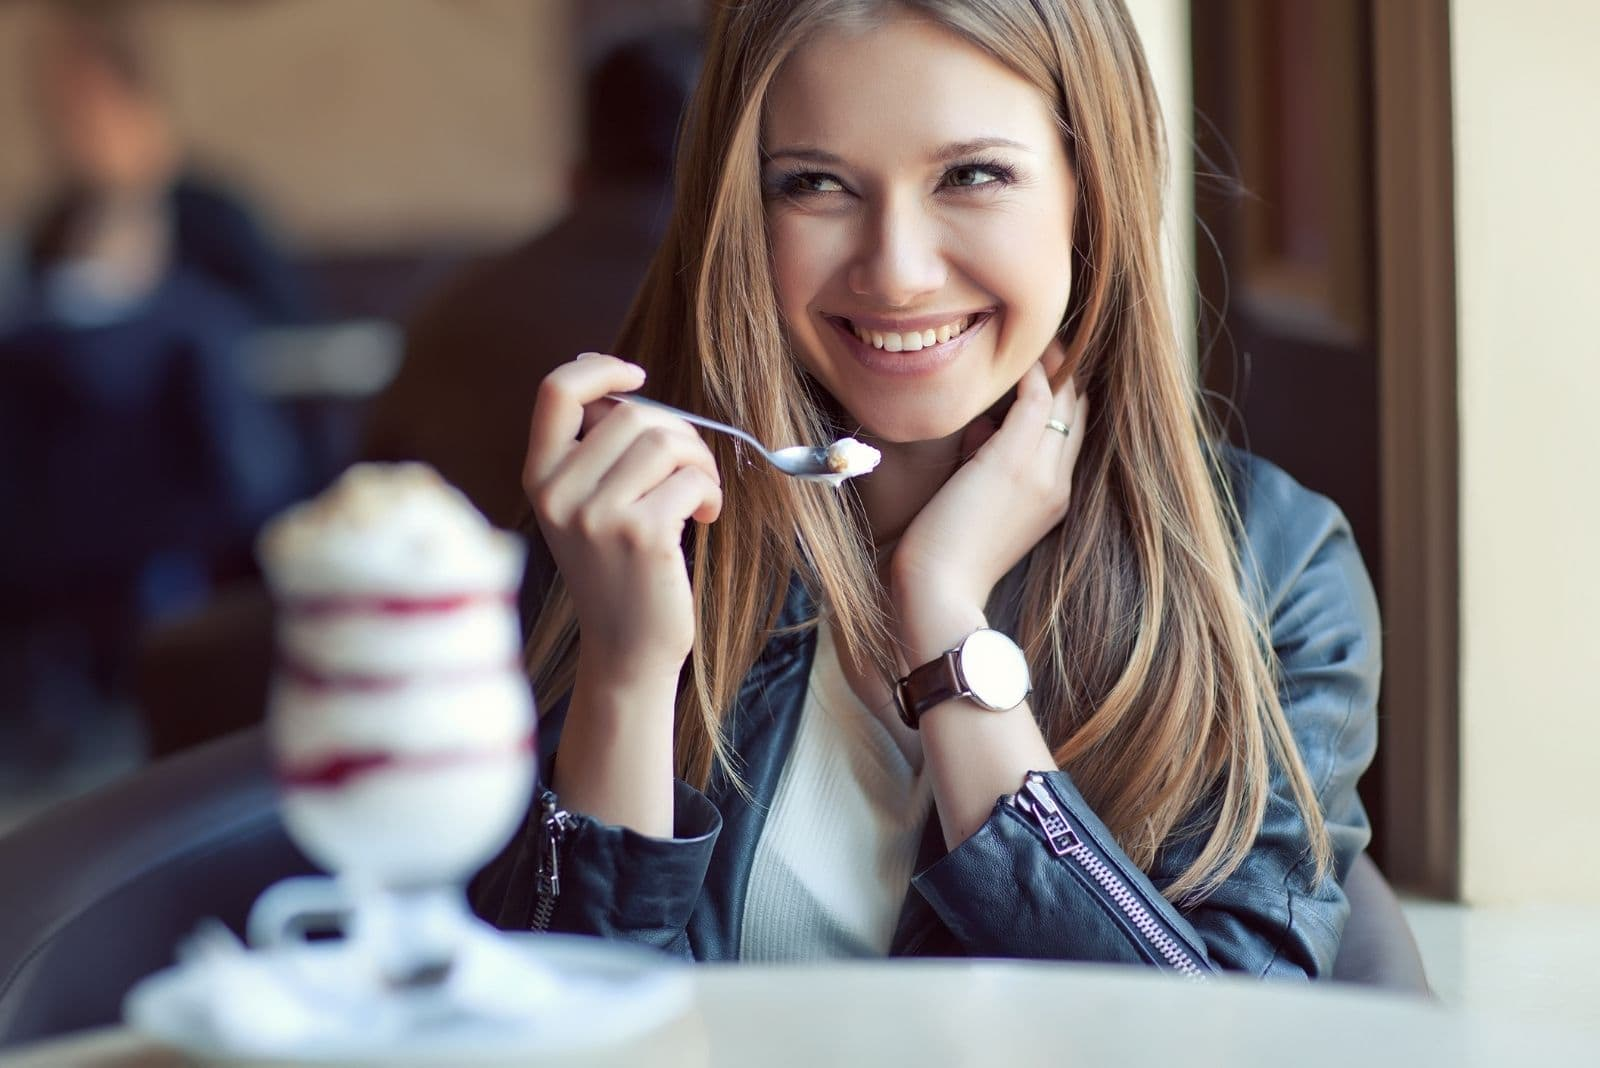 woman eating ice cream and smiling while looking at somebody and holding her hair